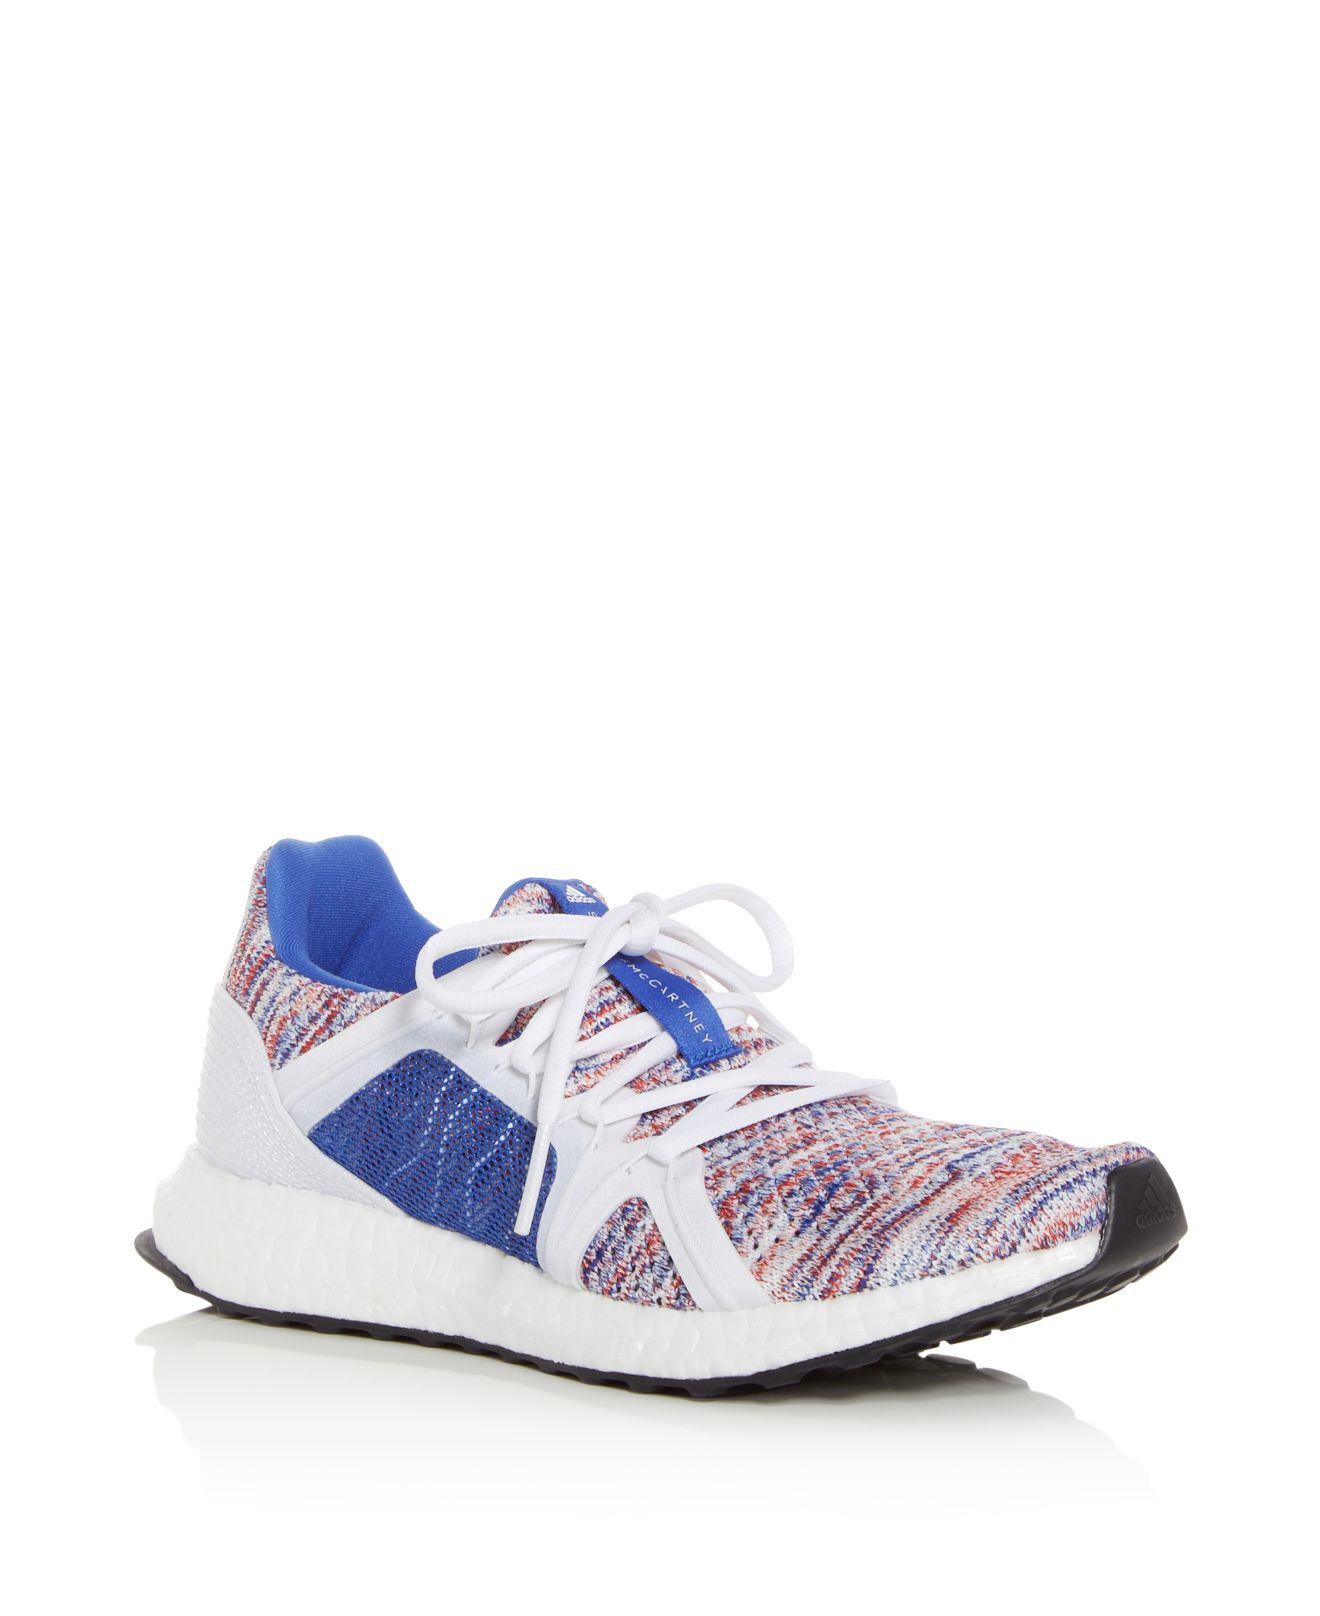 adidas Women's Ultraboost Parley Knit Lace Up Sneakers hlrSVEul0V